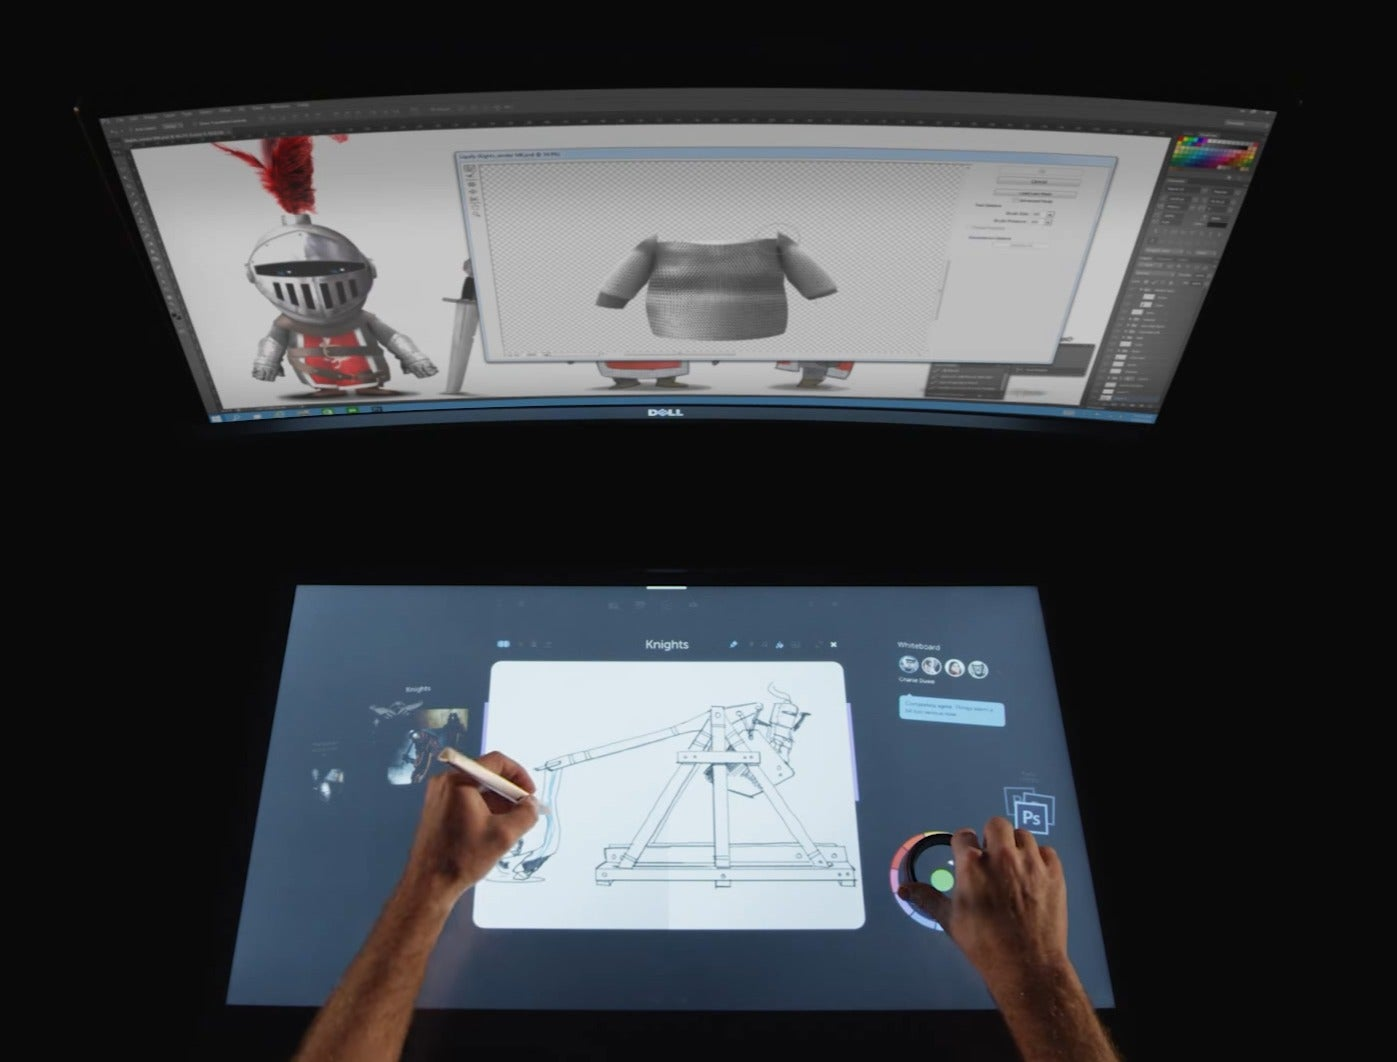 Graphic Design Apps For Windows